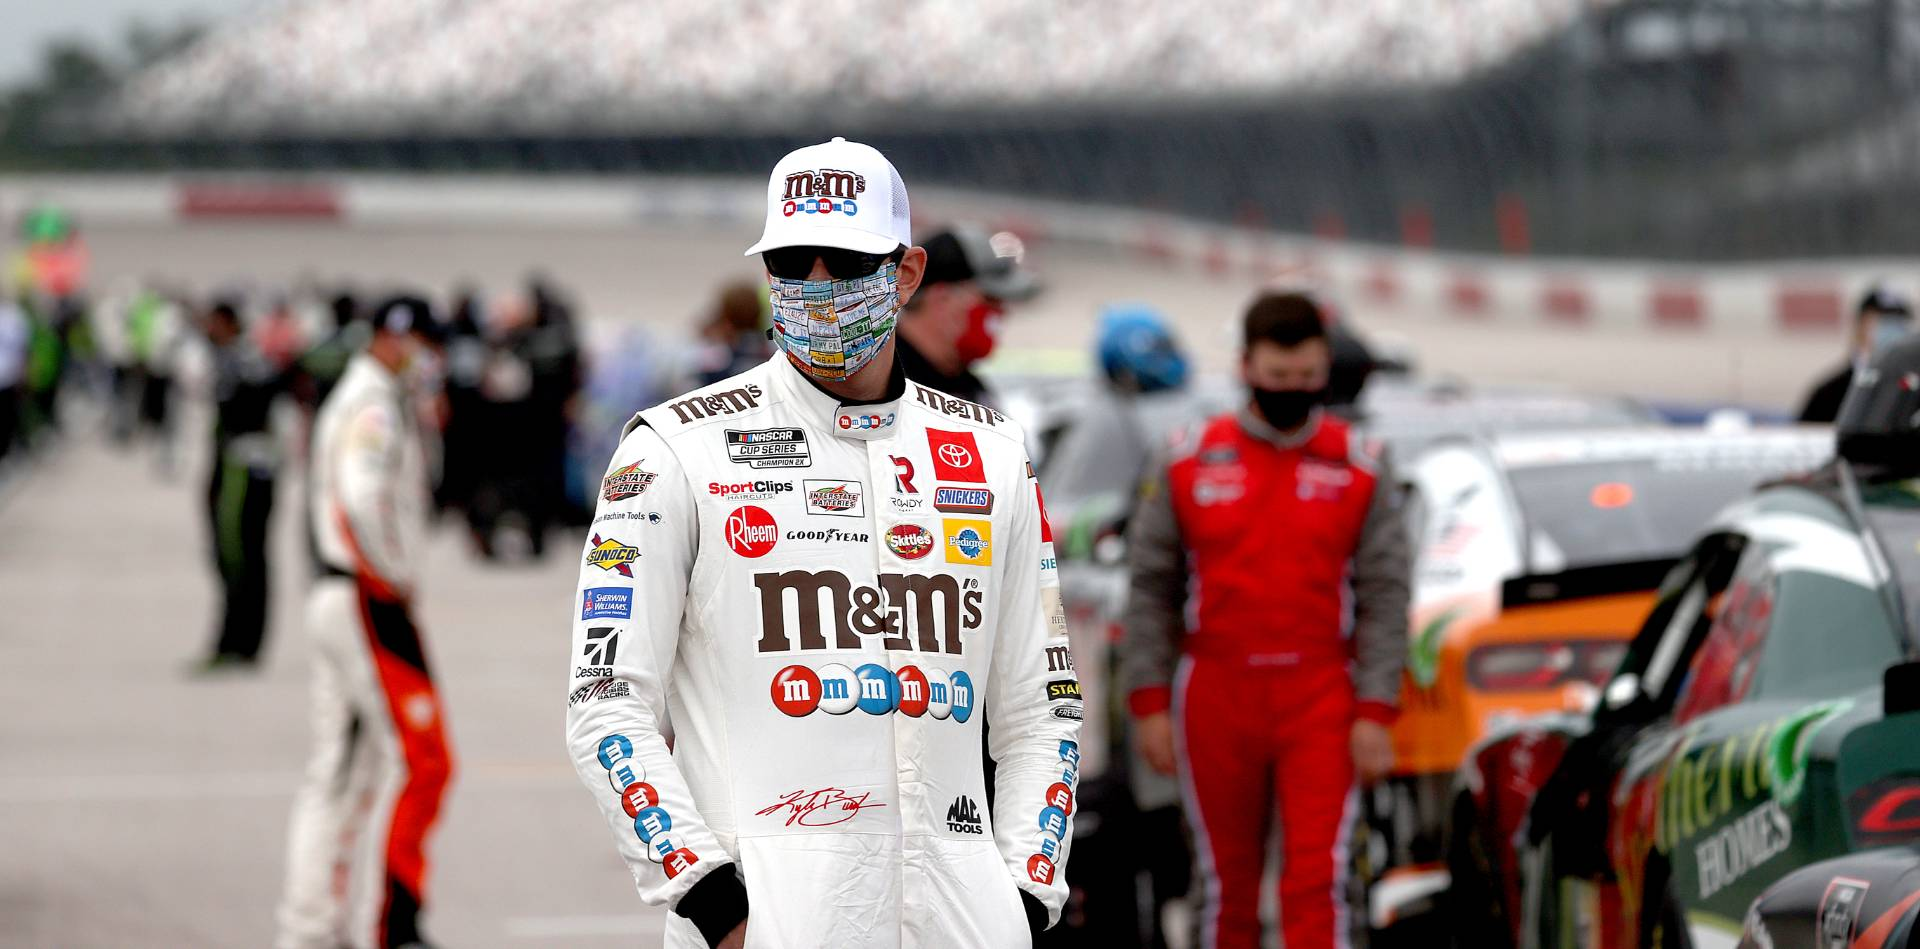 NASCAR betting returns with the Coca-Cola 600